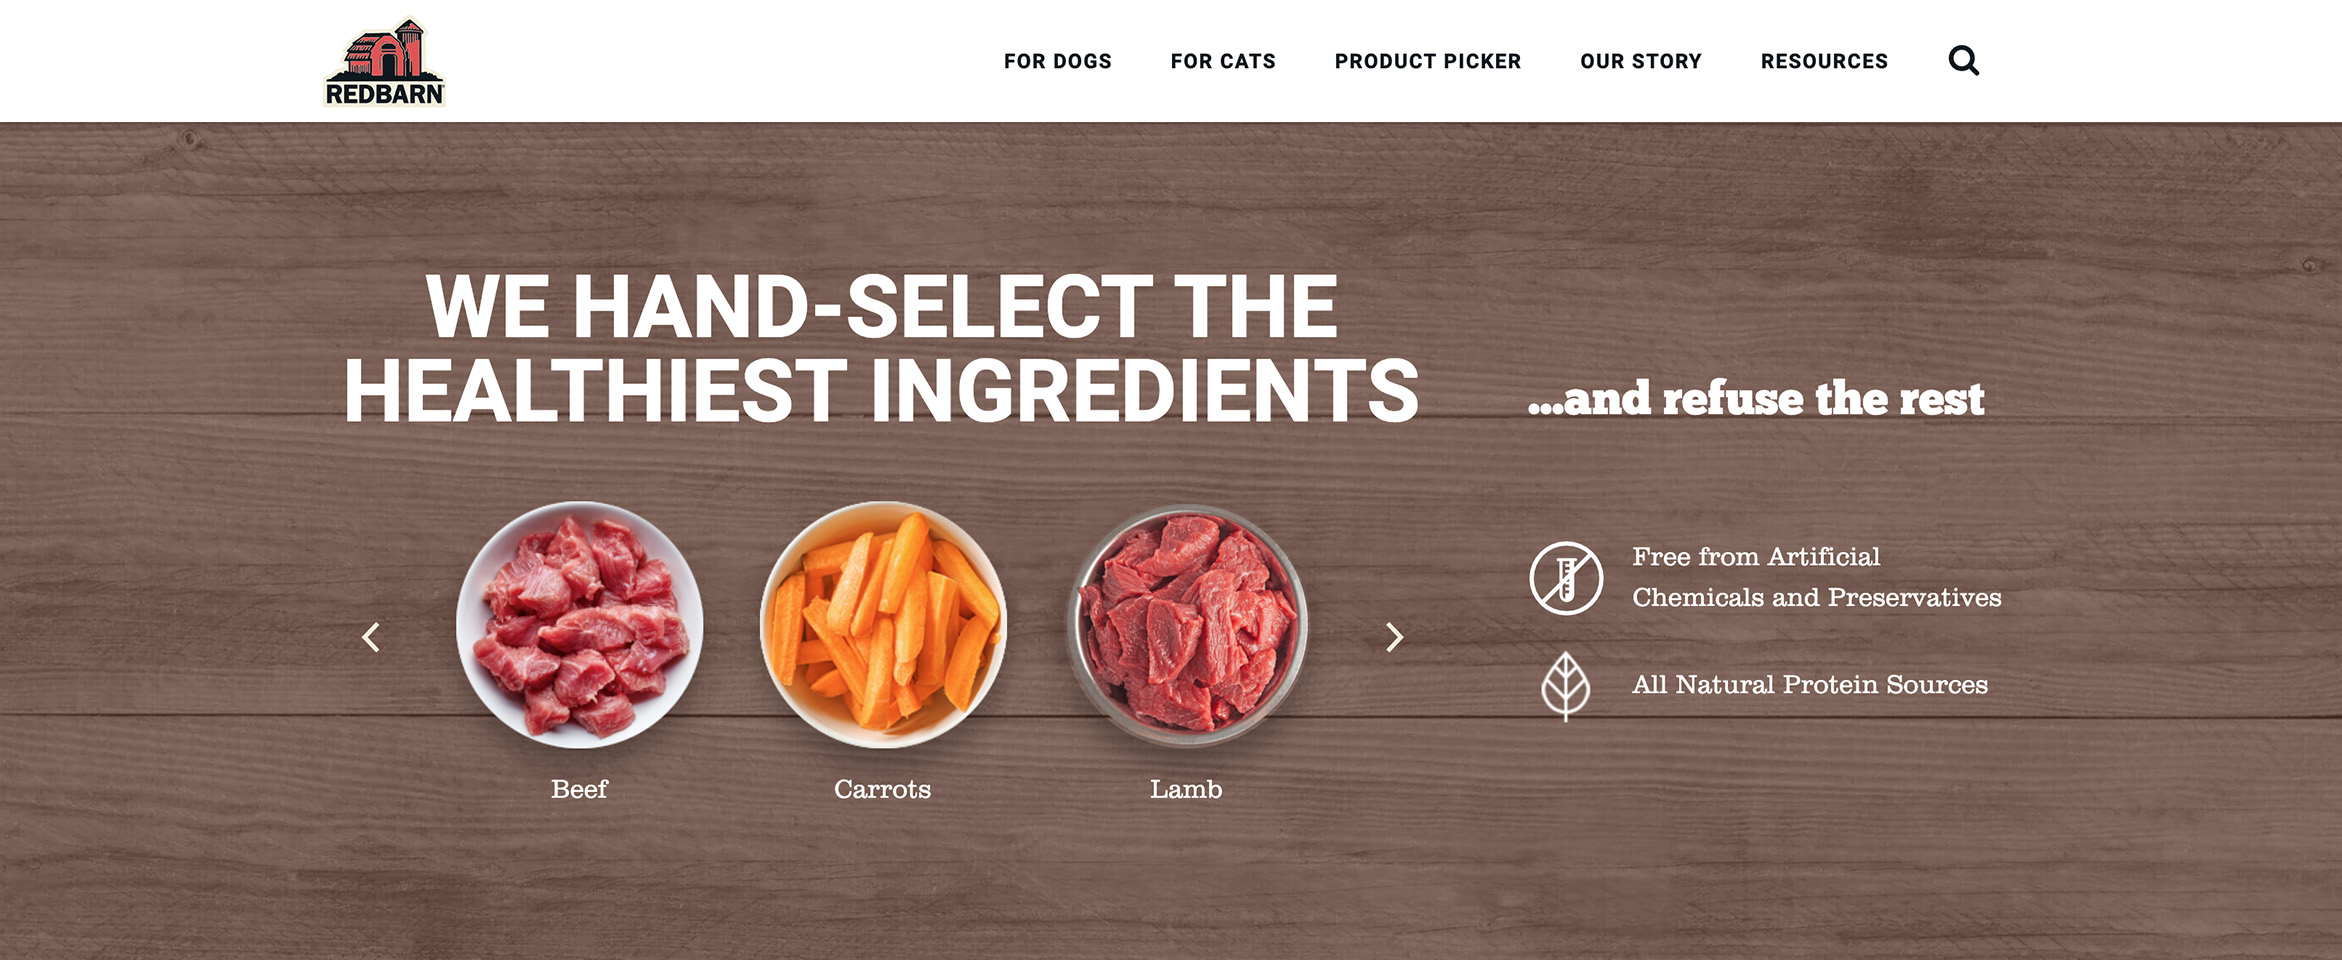 Creating the purr-fect new website for a popular pet food brand Build Image-2